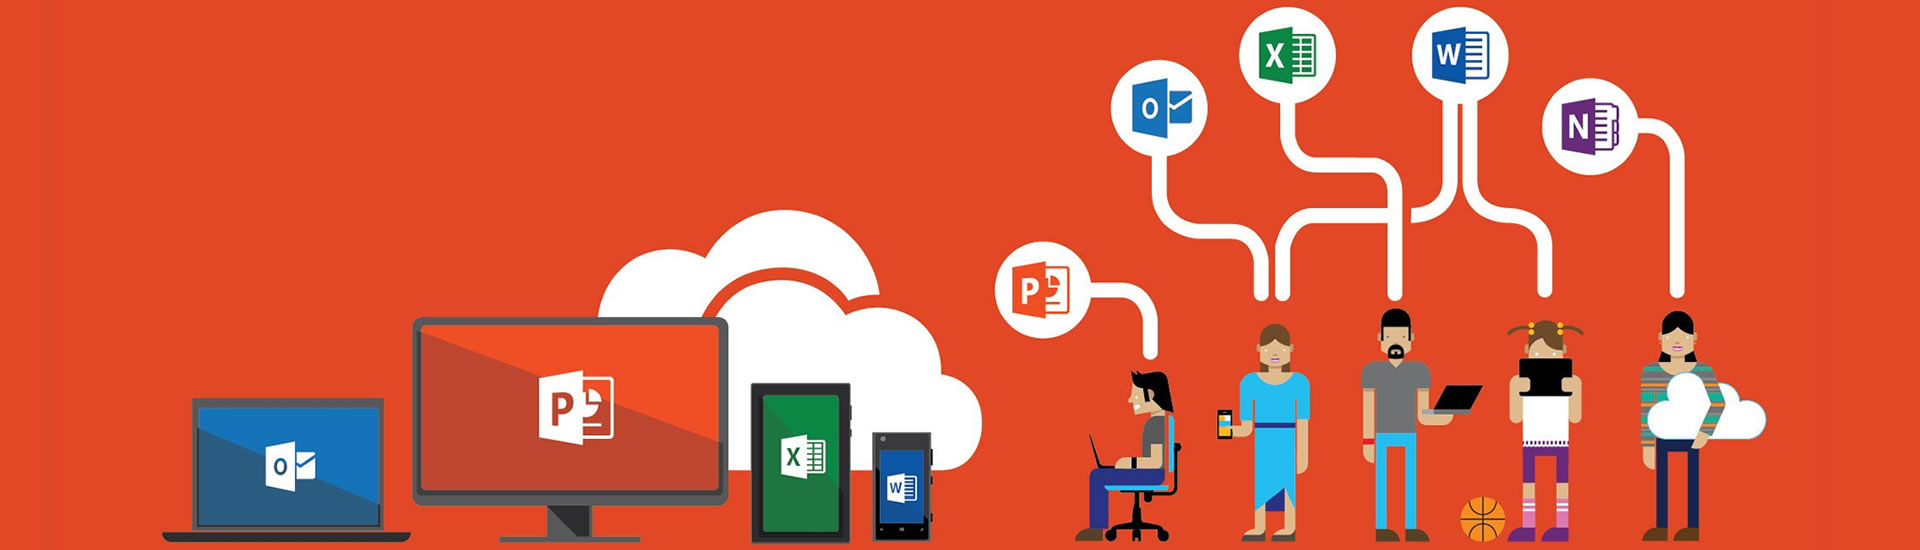 Office 365 Upgrade & Migration Services – Birmingham - Tek-nology Solutions